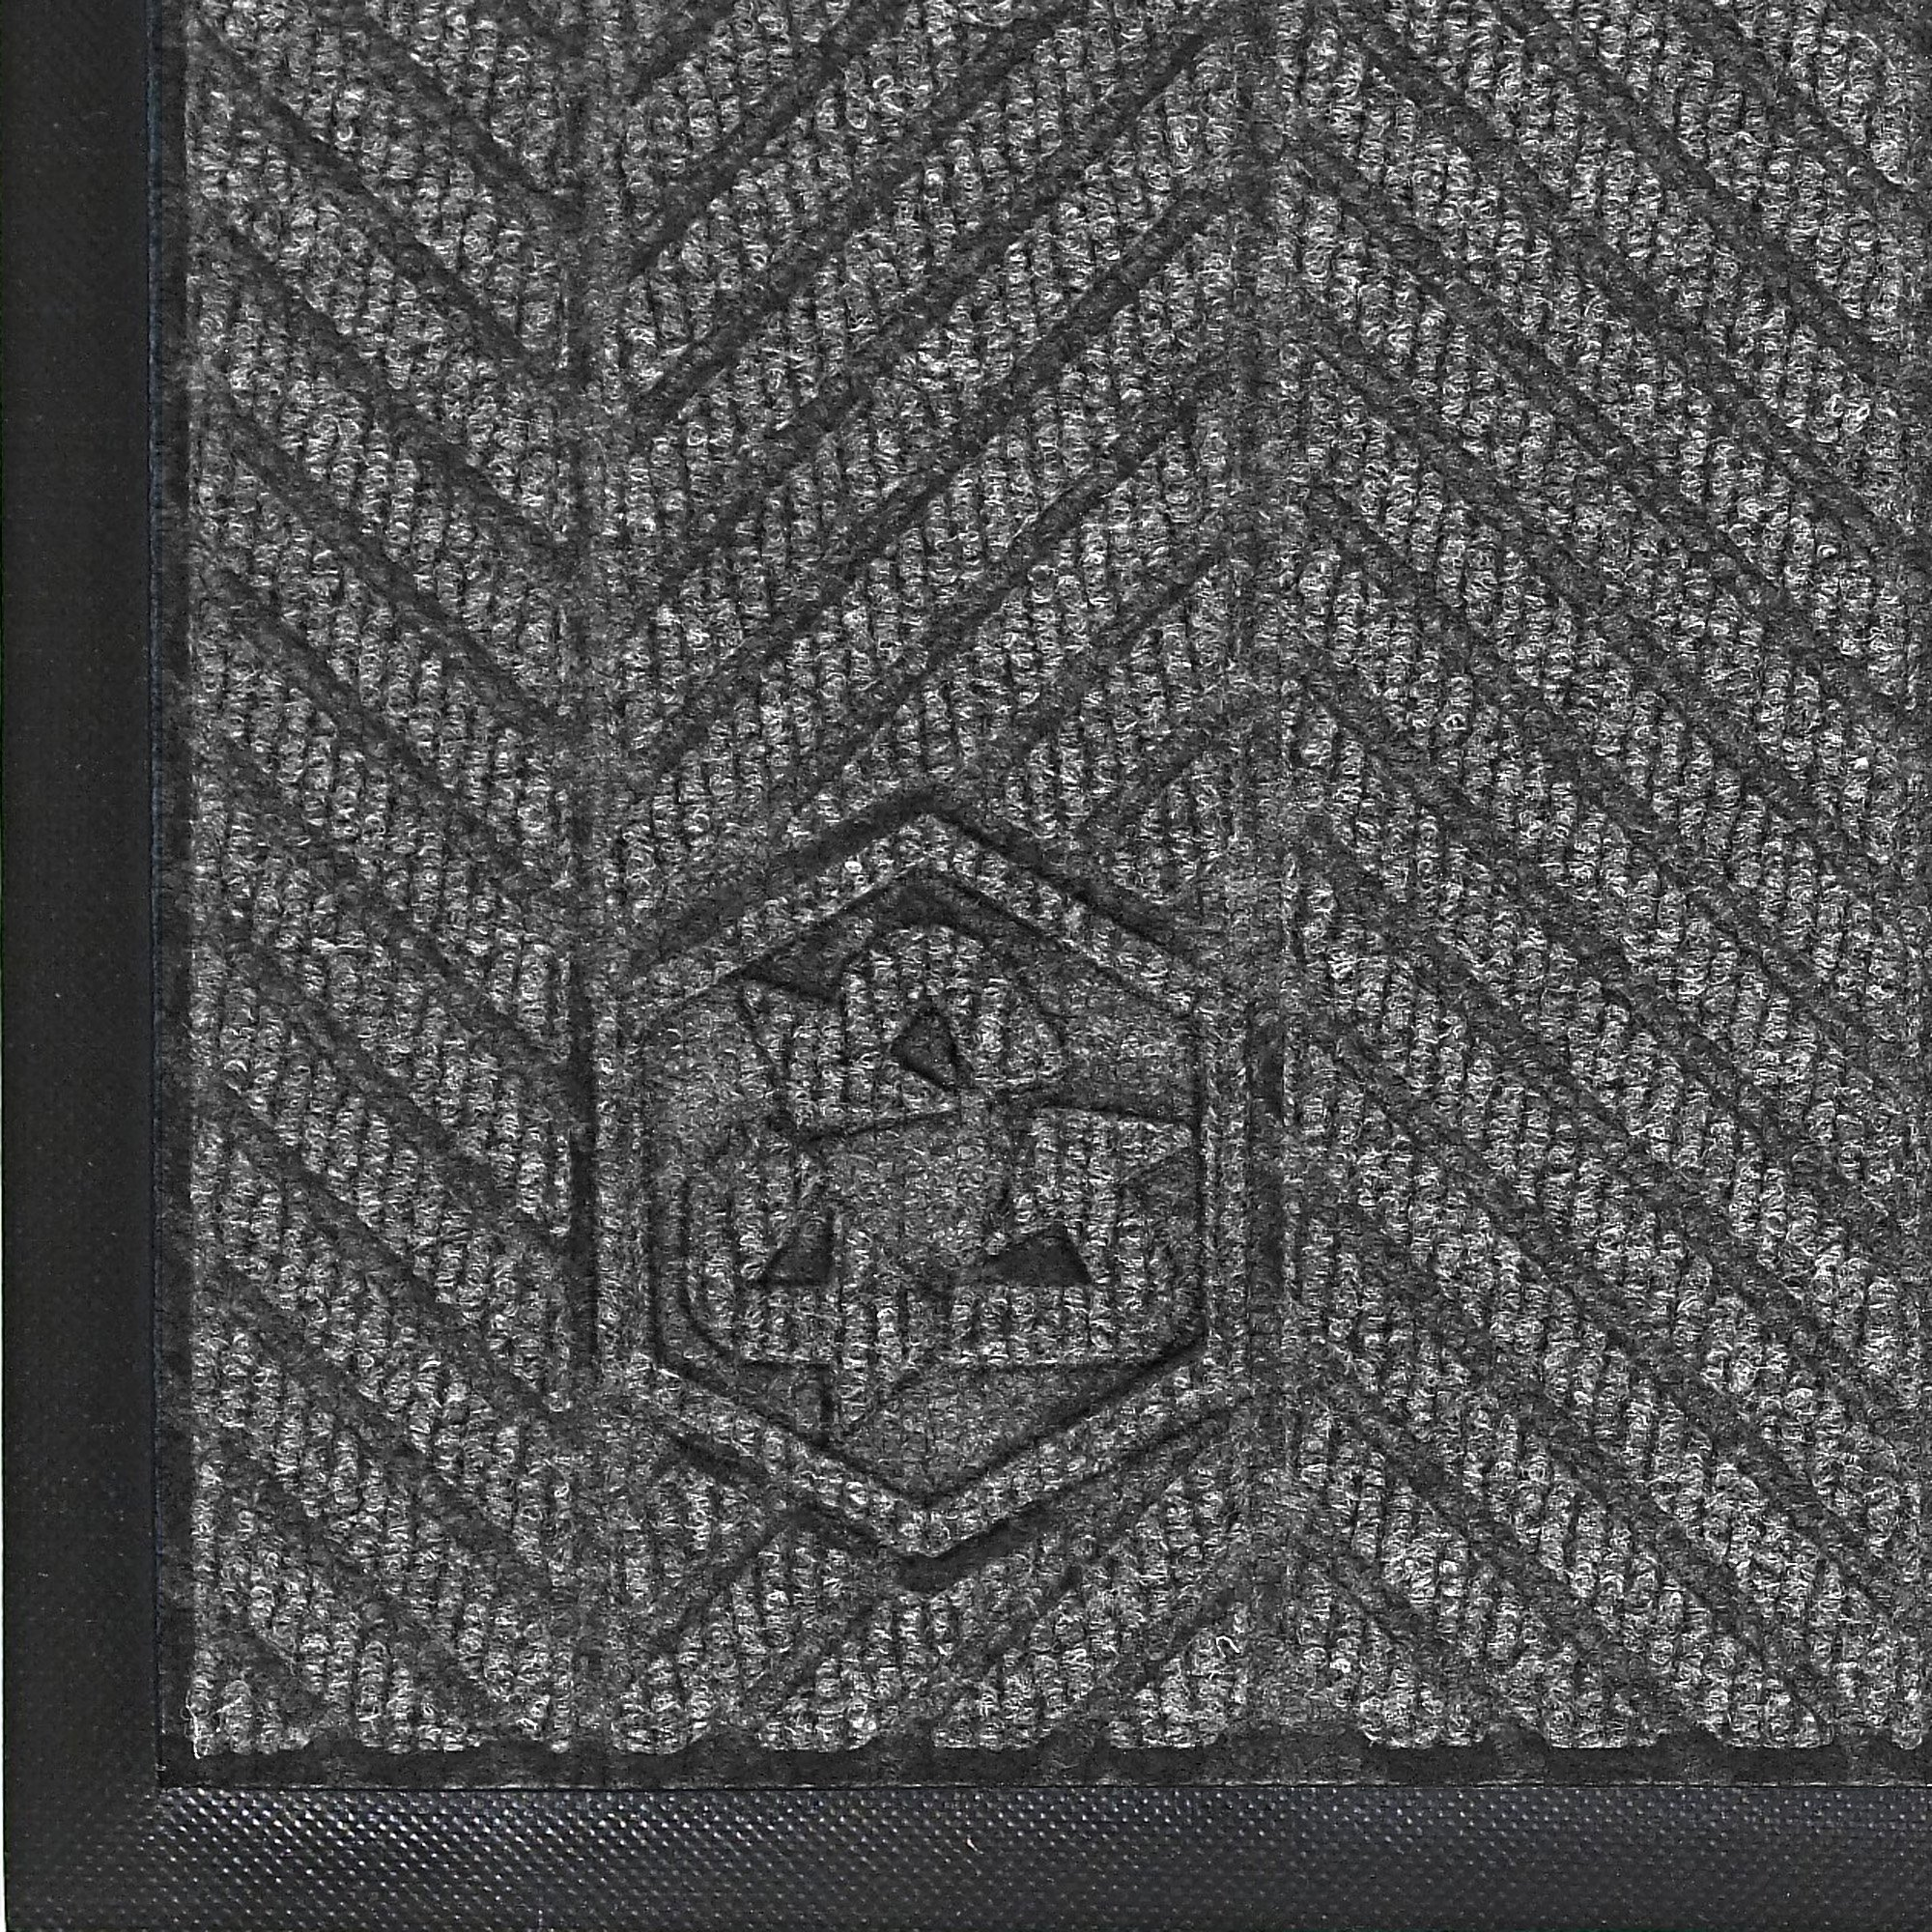 M+A Matting 2240 Waterhog Classic ECO Elite PET Polyester Entrance Indoor Floor Mat, SBR Rubber Backing, 5' Length x 3' Width, 3/8'' Thick, Grey Ash